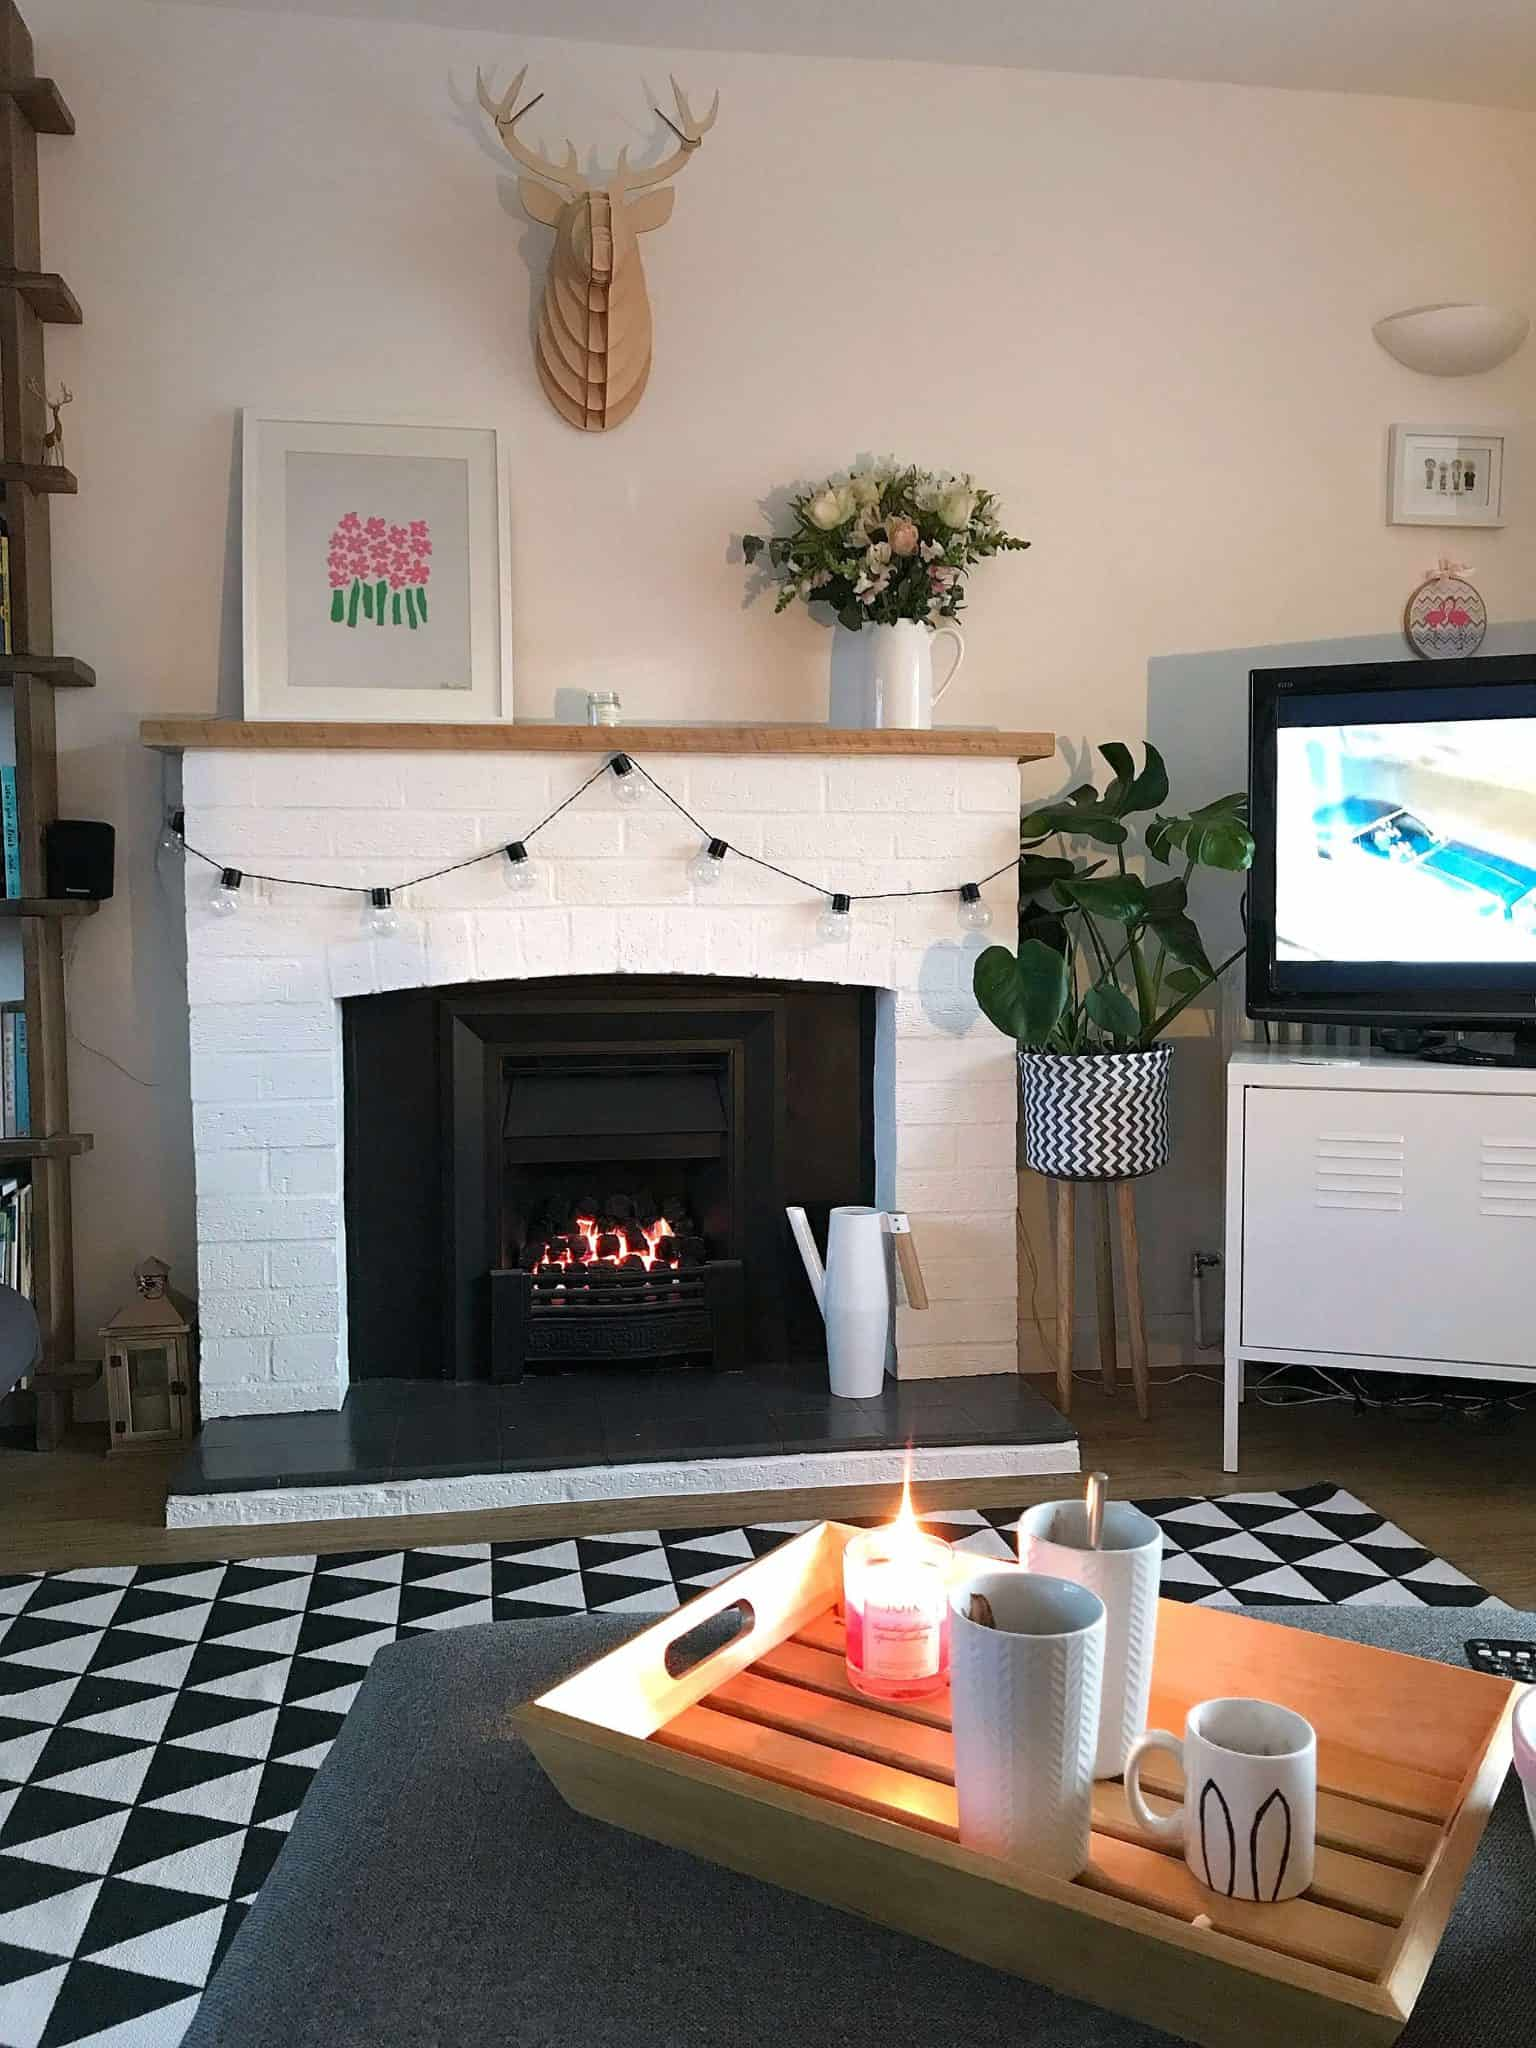 Too Good To Go Out? How To Create a Hygge Haven